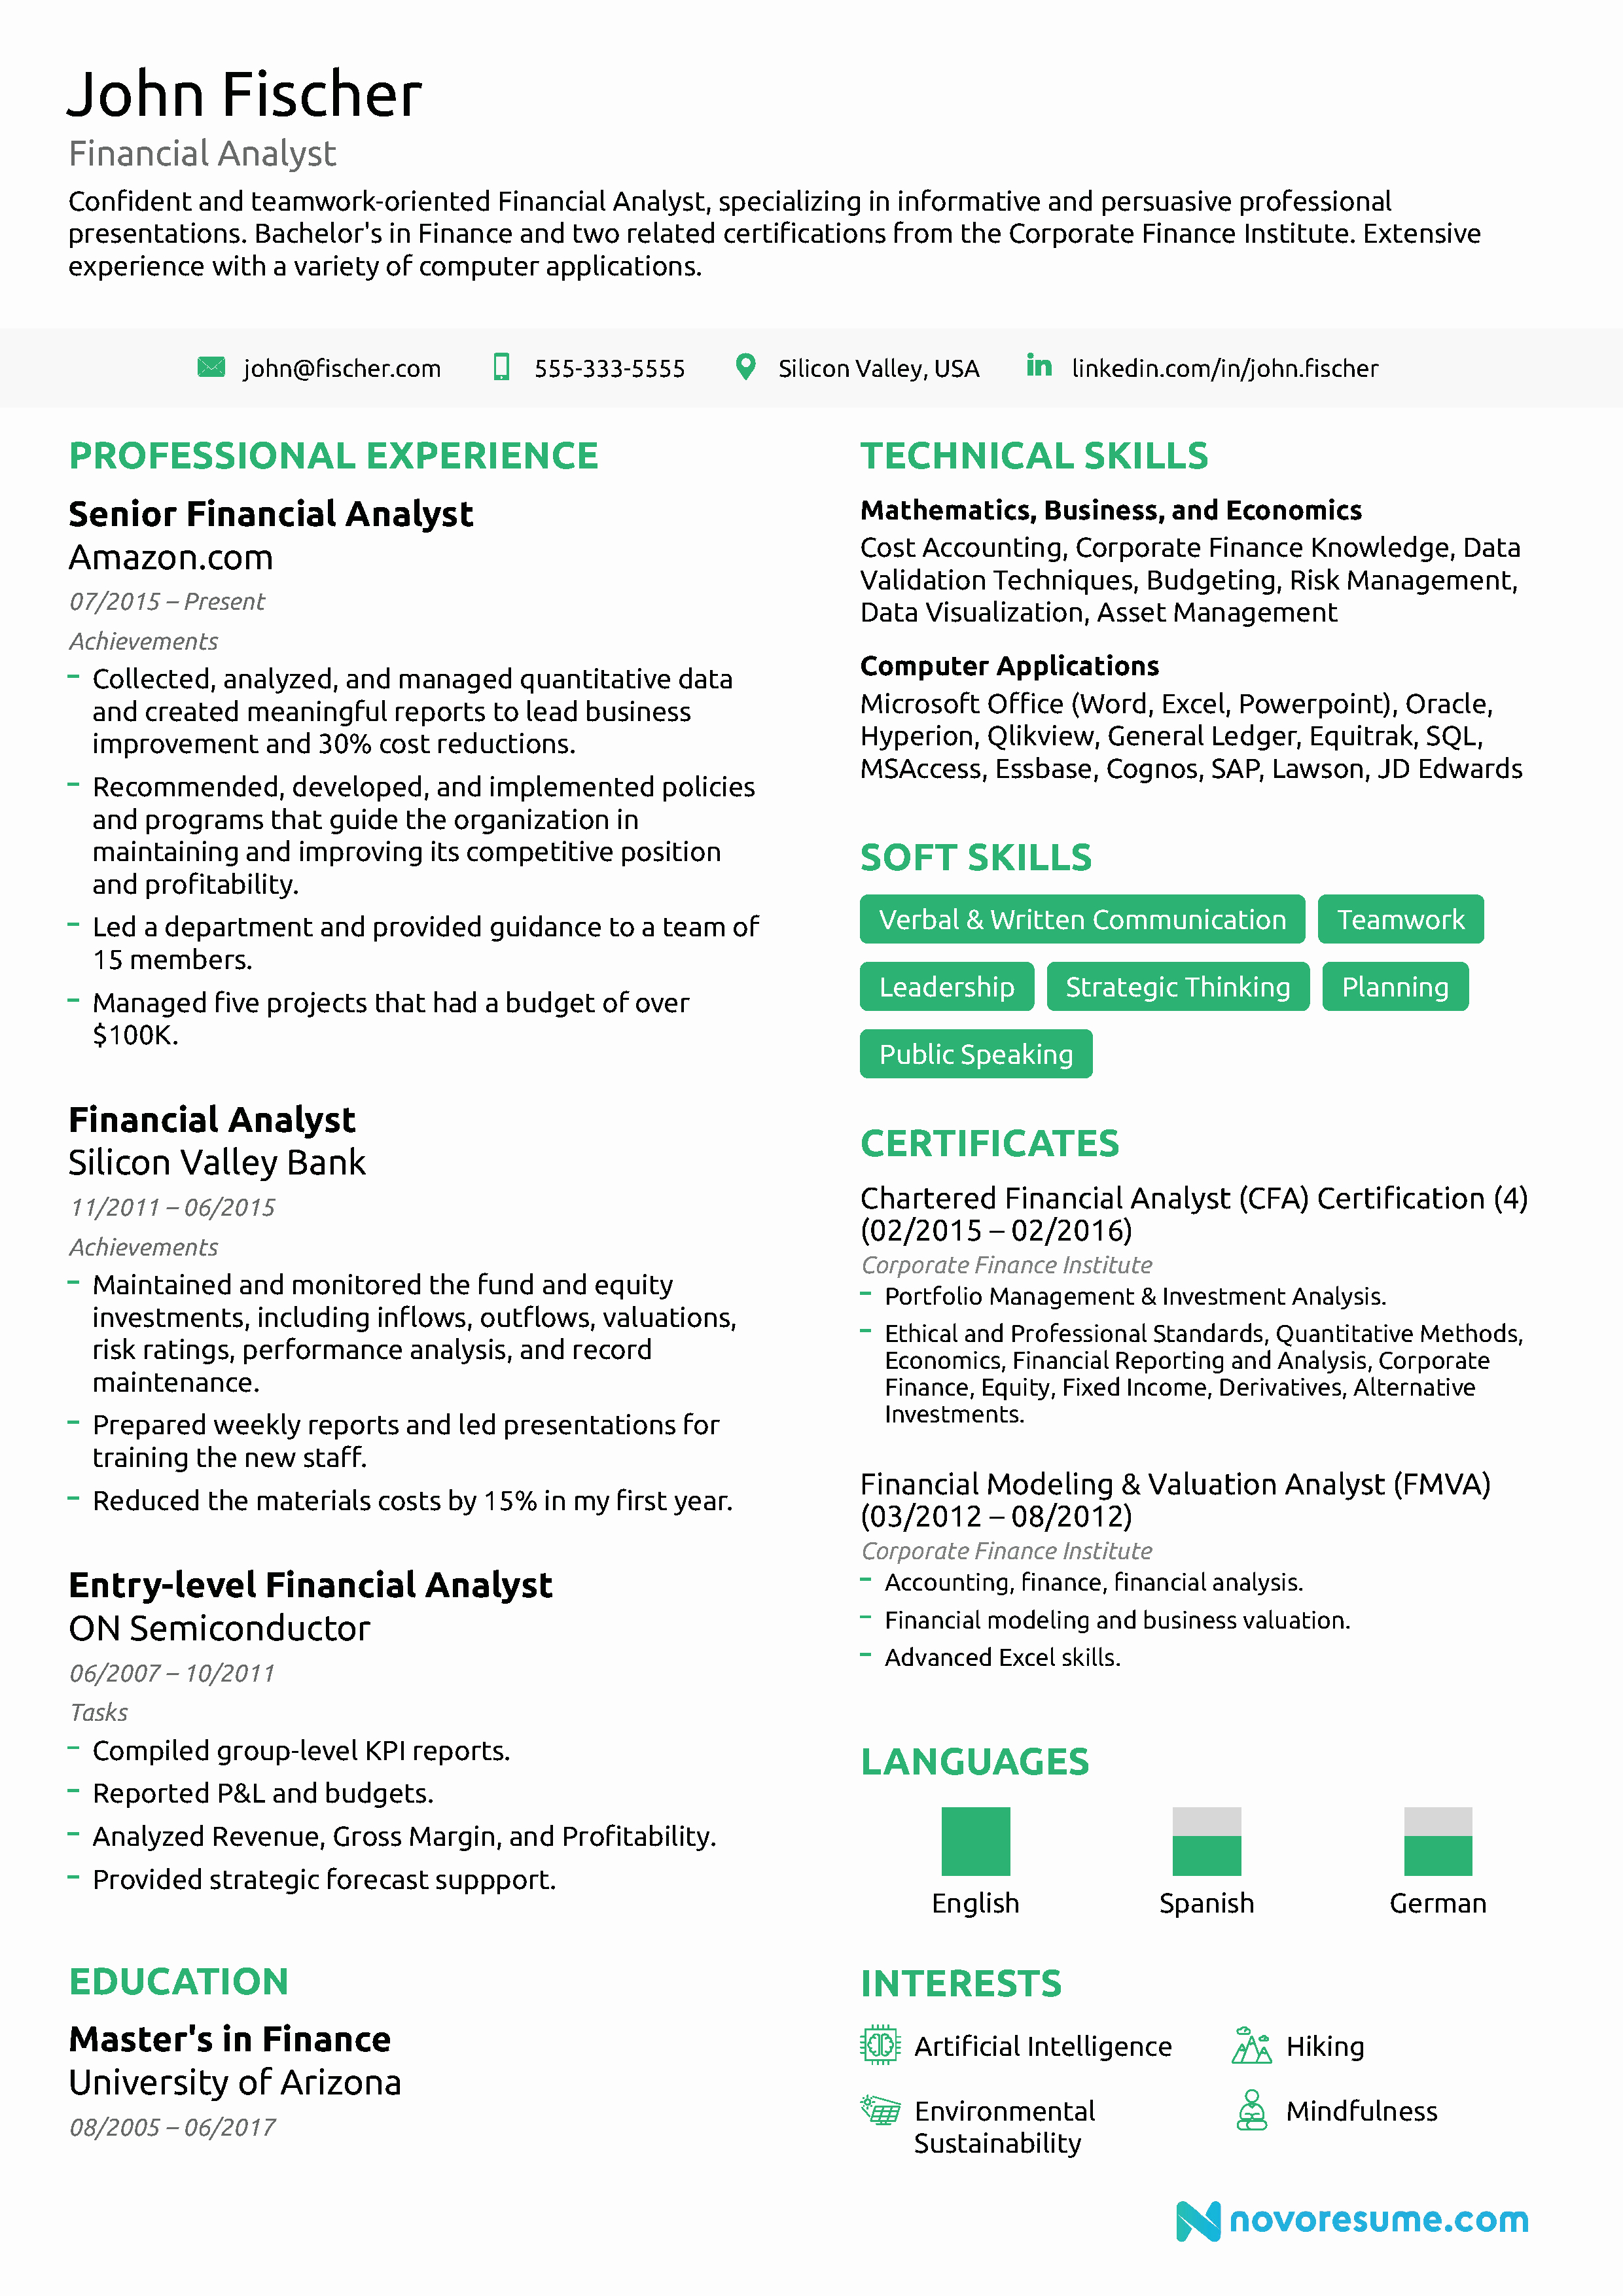 Financial Analyst Resume [2019] Guide & Examples